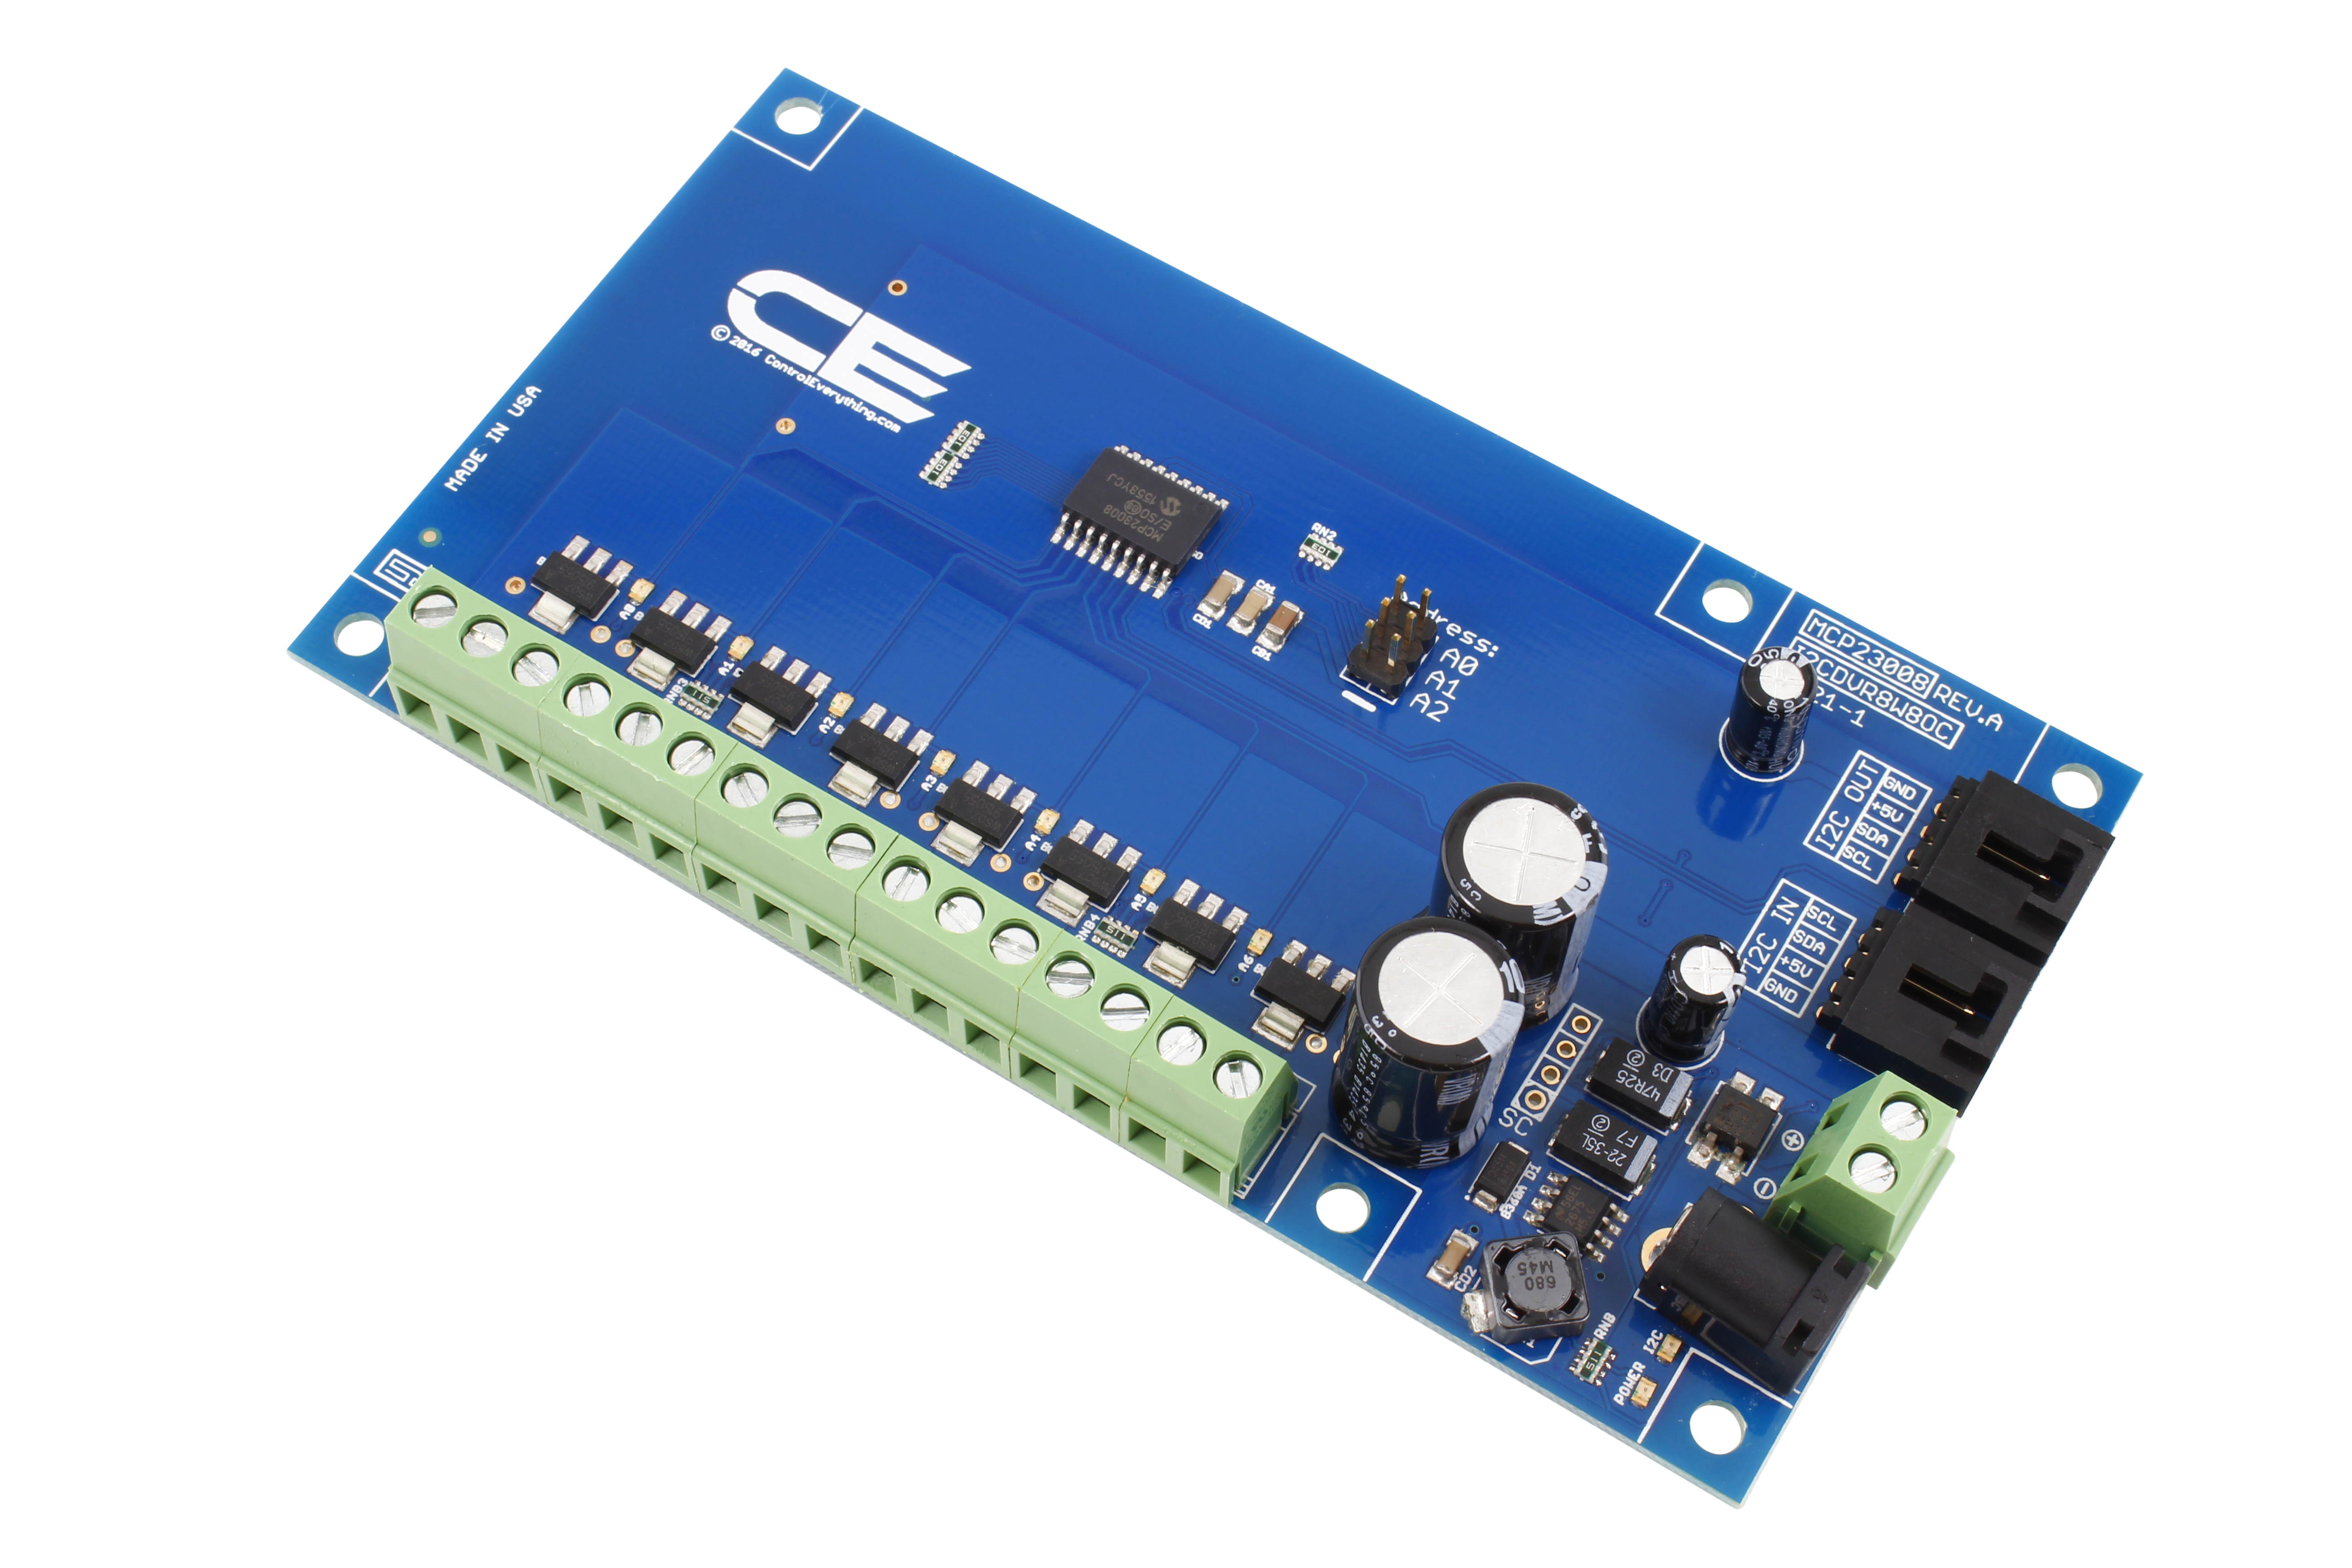 MCP23008 8-Channel 8W Open Collector FET Driver with Cross-Platform I2C Interface